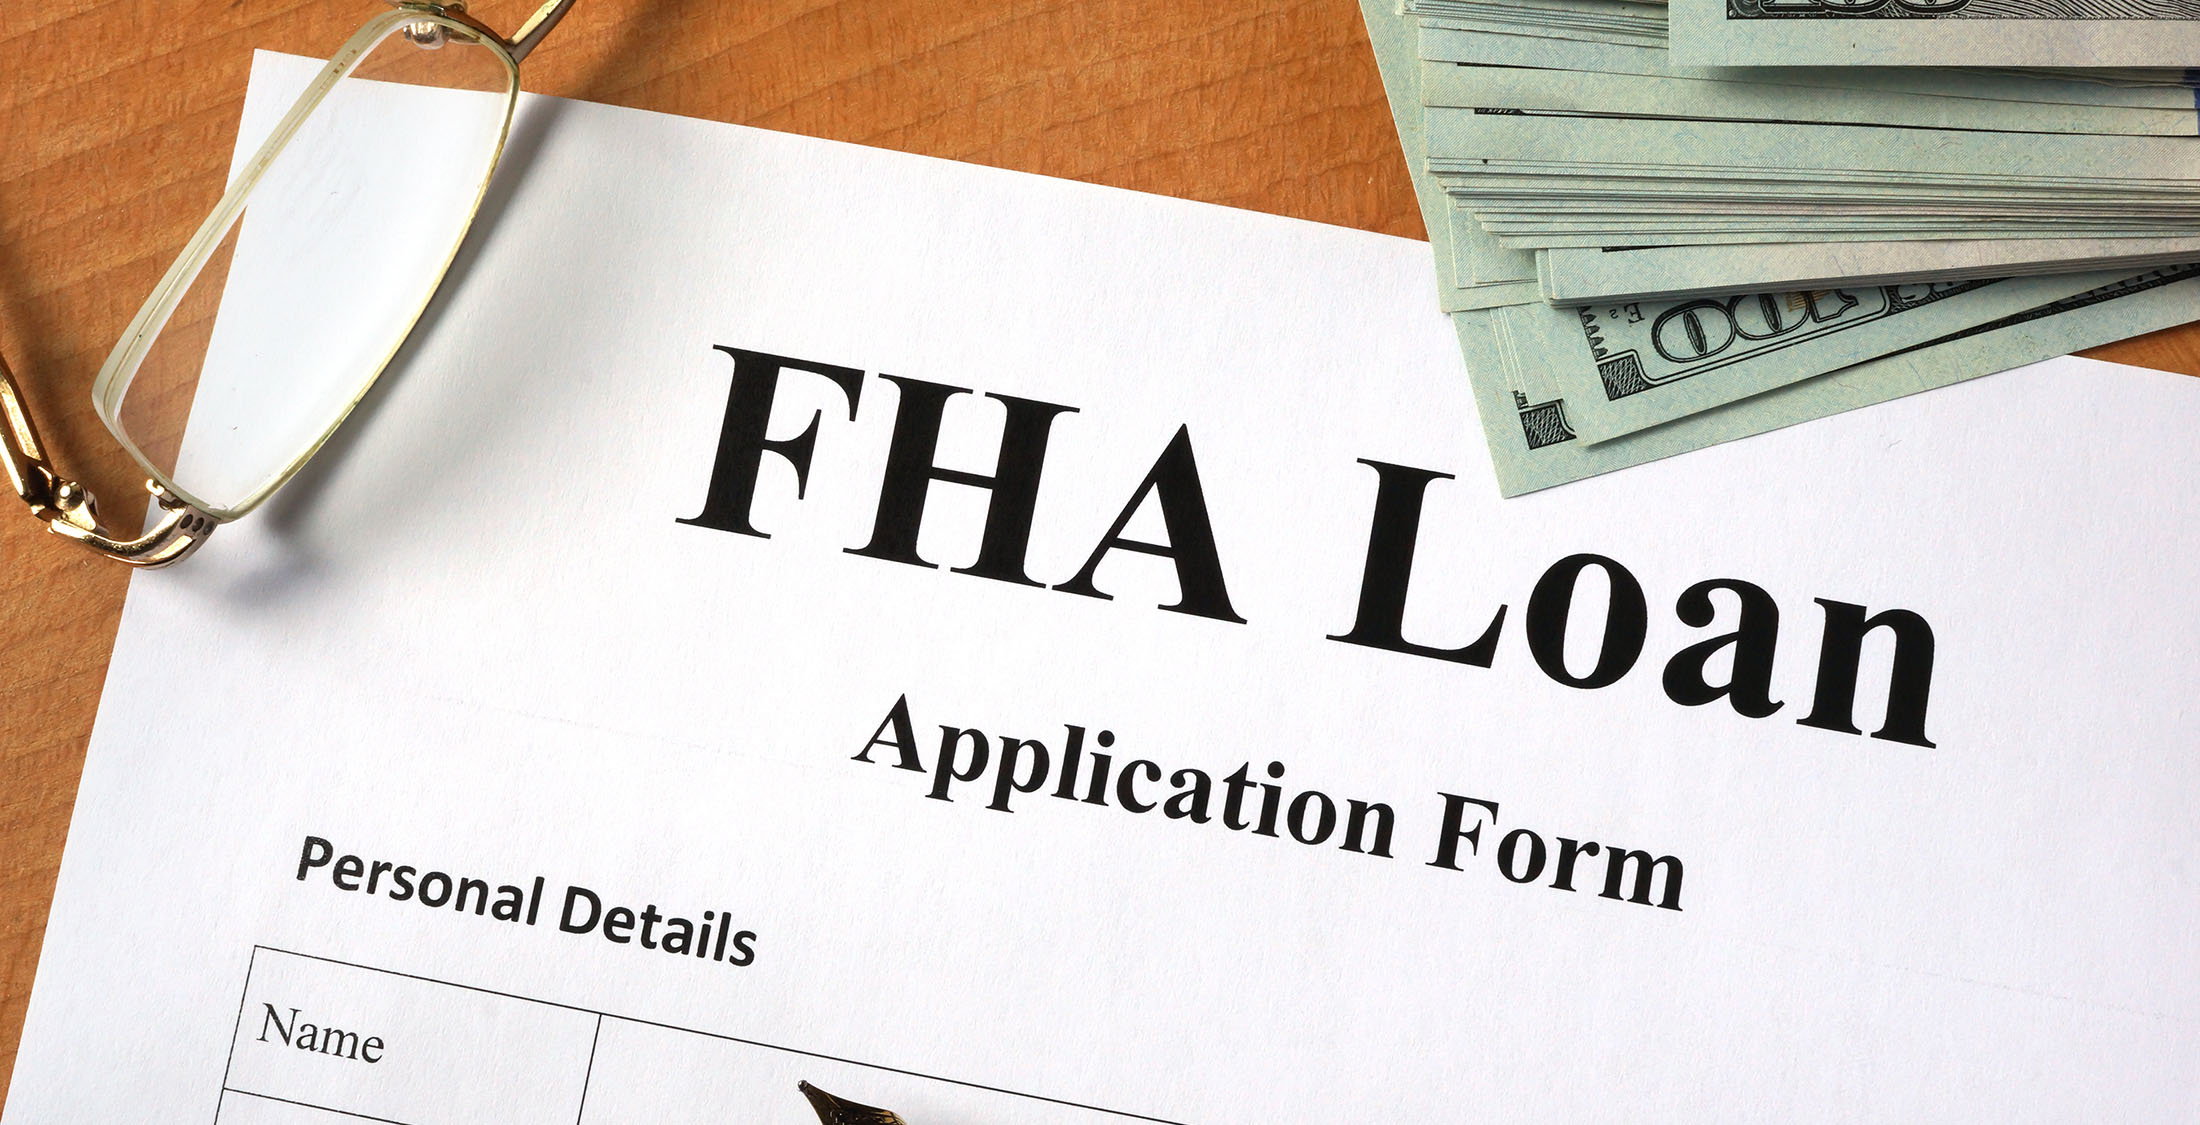 How to finance a manufactured home gobankingrates fha loan application form xflitez Gallery